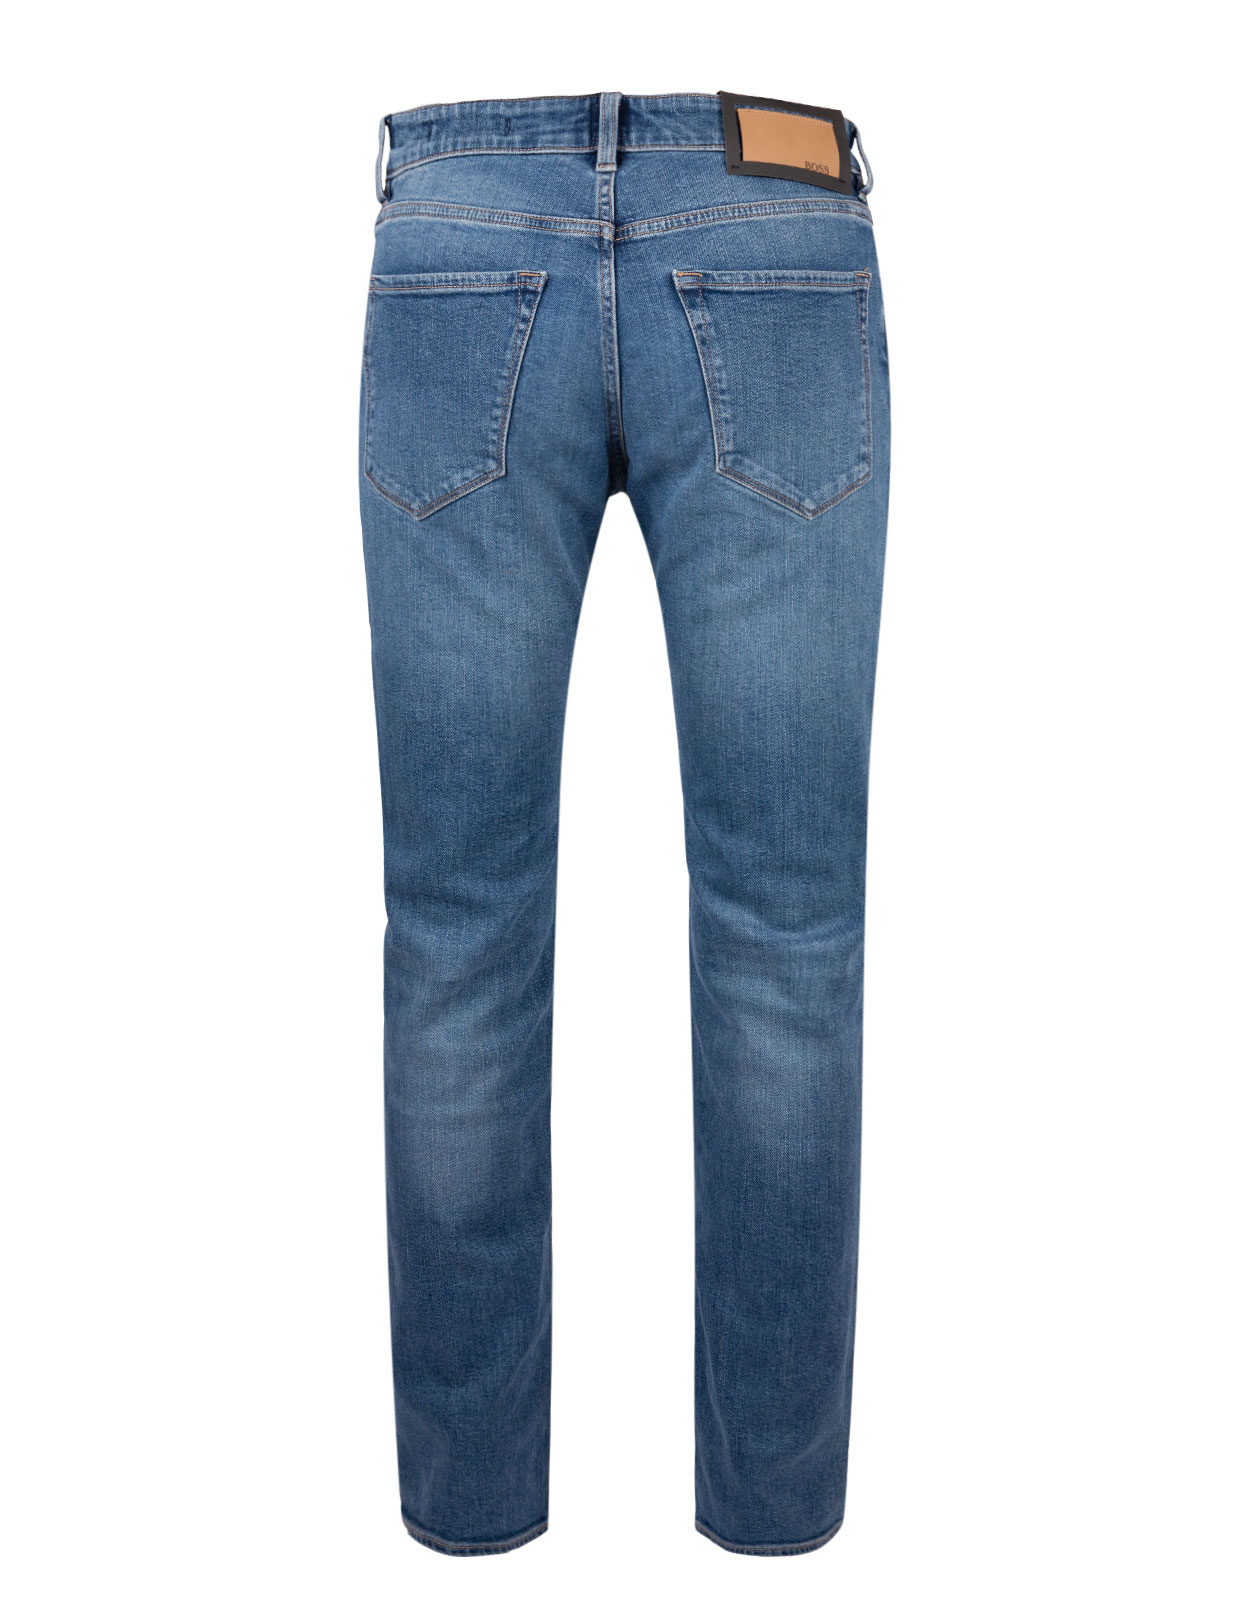 Maine Regular Fit Jeans Comfort Stretch Denim Bright Blue